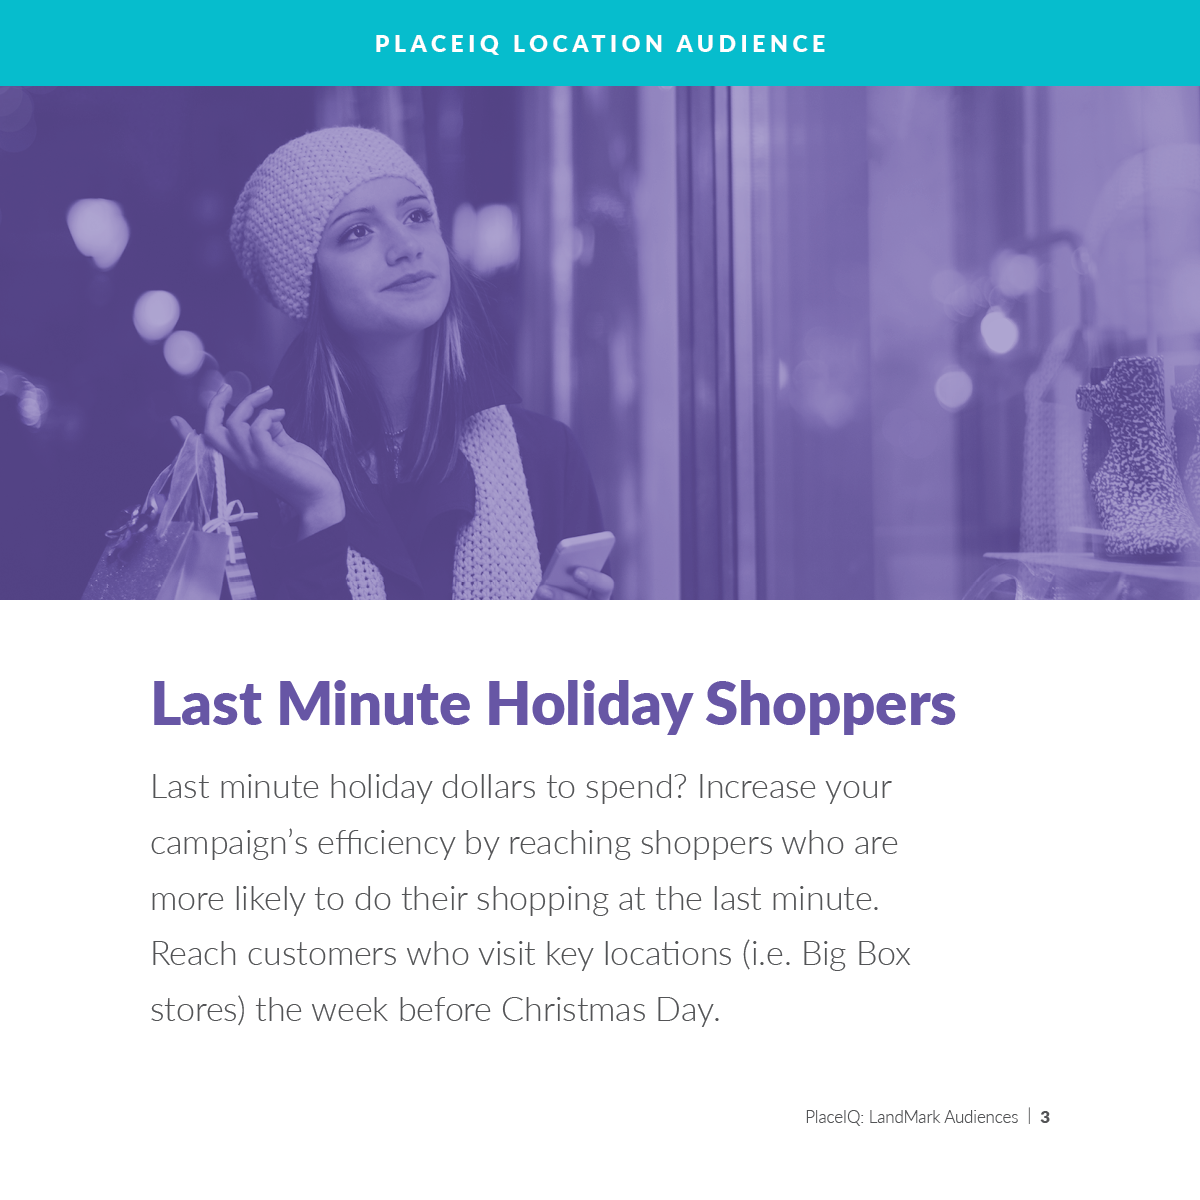 Last Minute Holiday Shoppers